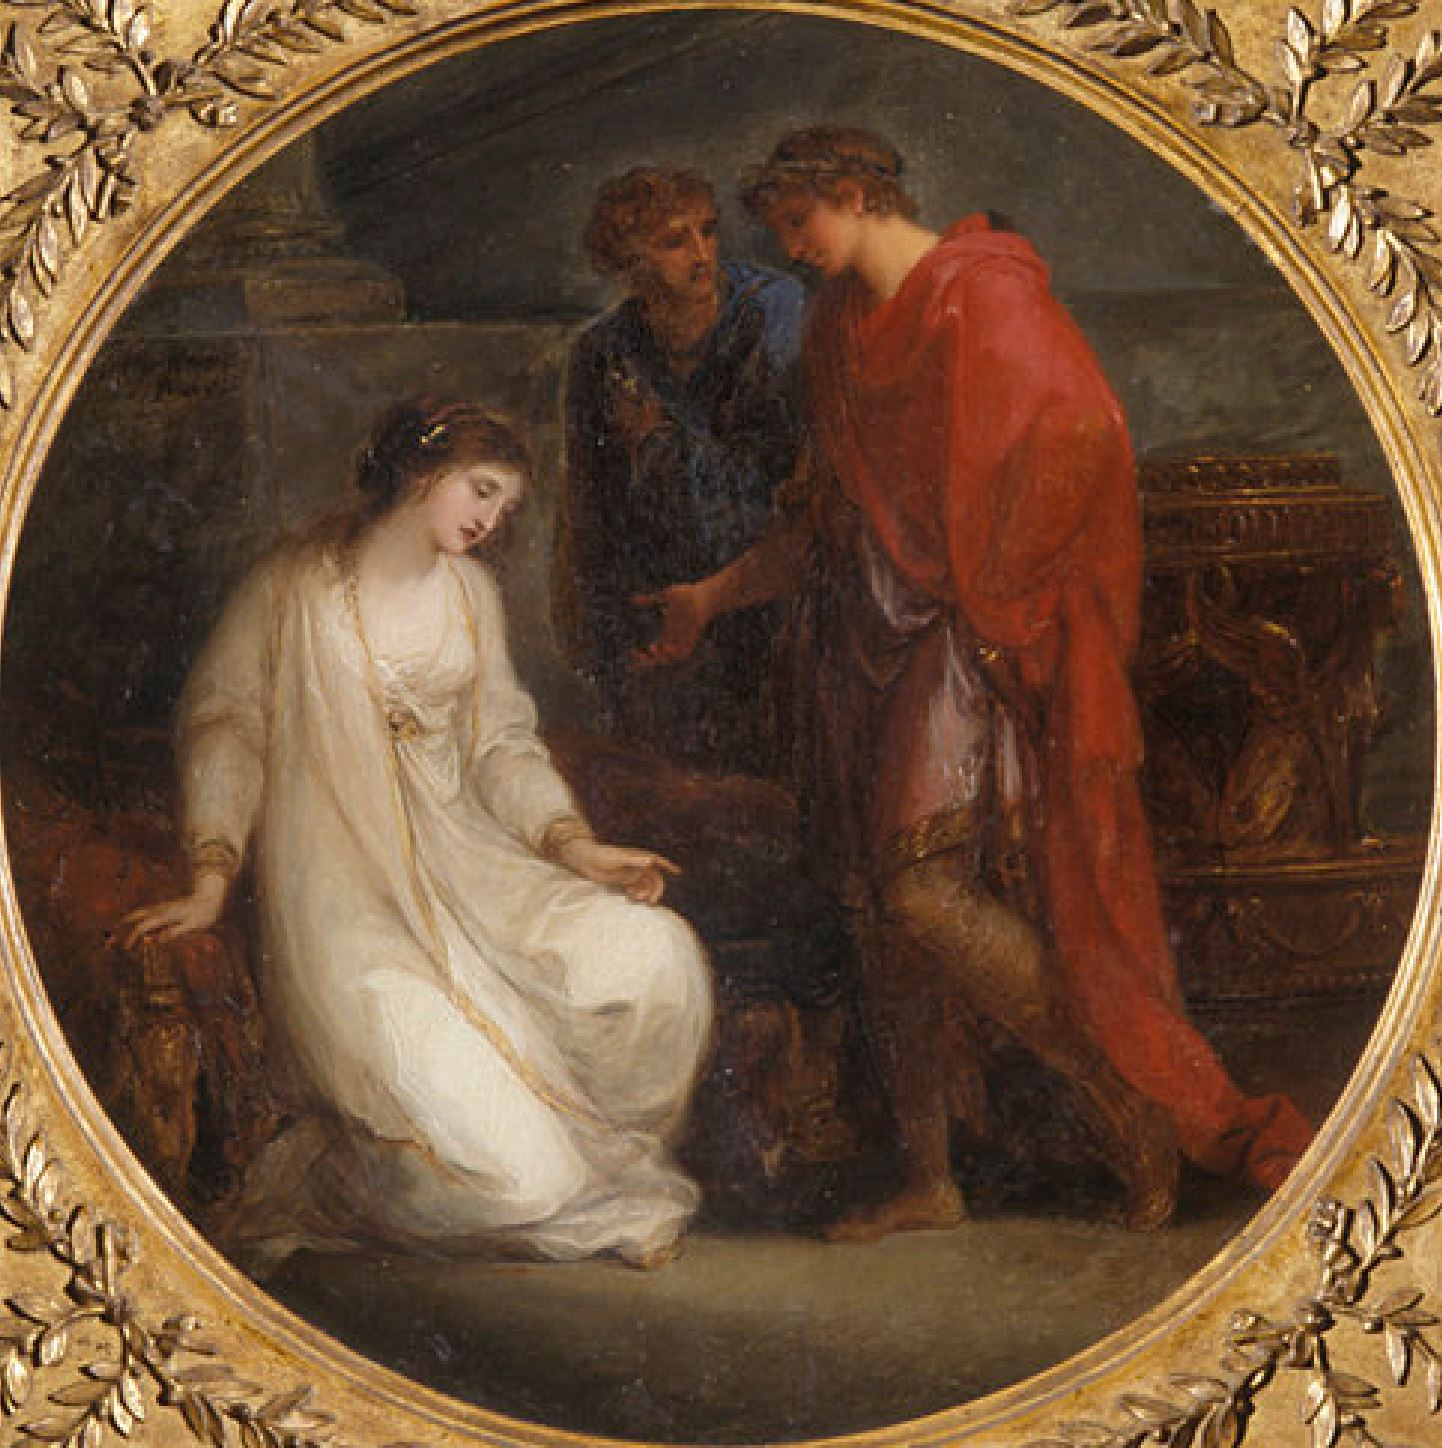 angelica kauffman 1782 Cleopatre et Auguste University of Kansas